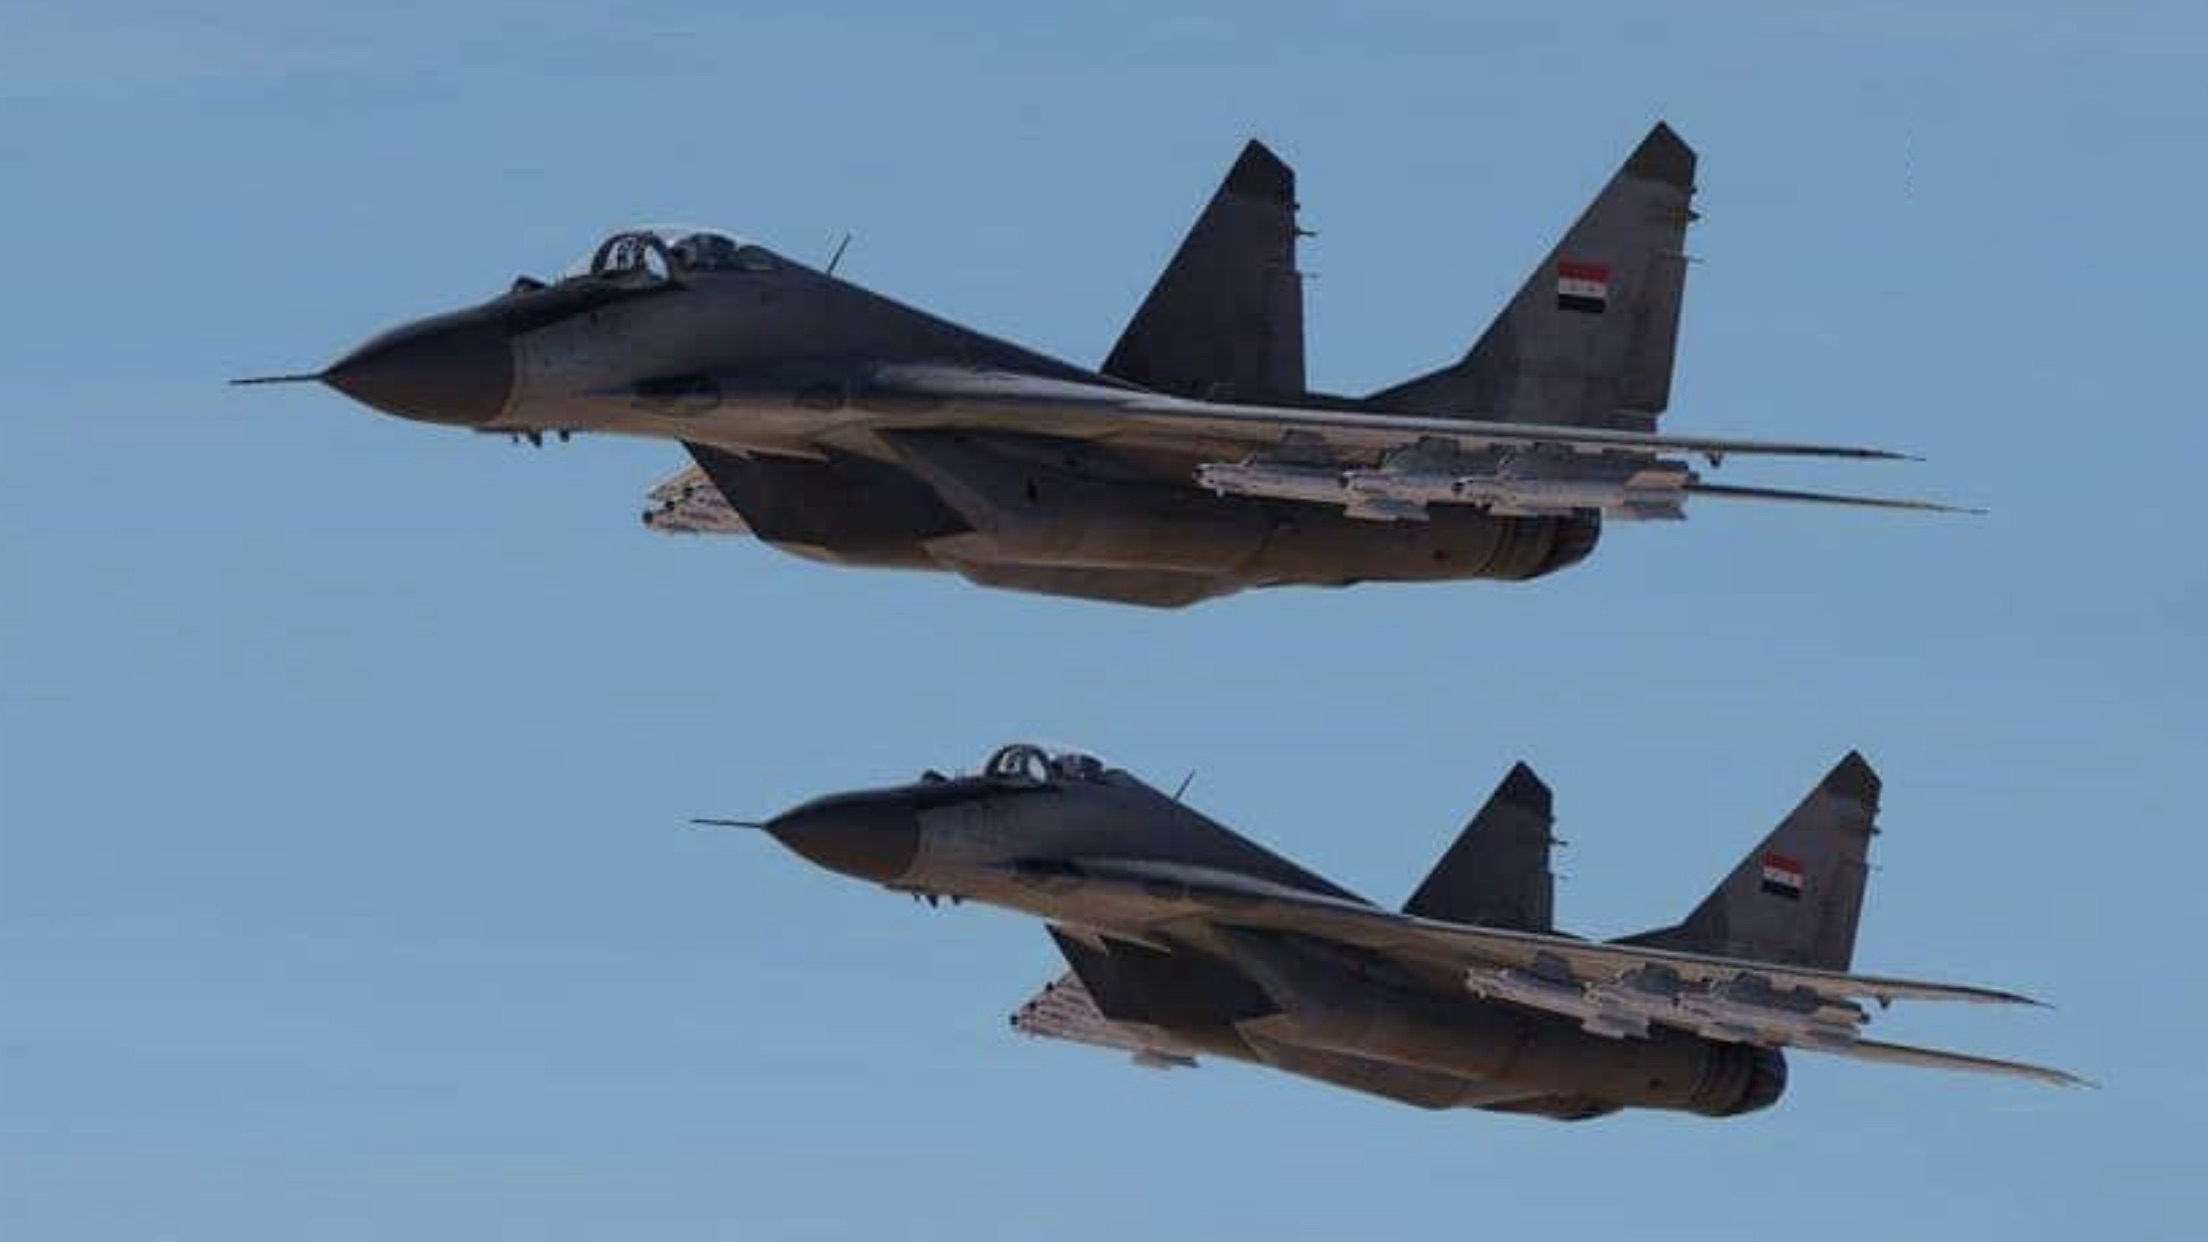 Syria Finally Receives Modern Fighter Jets From Russia: MiG-29SMTs to Bolster Damascus